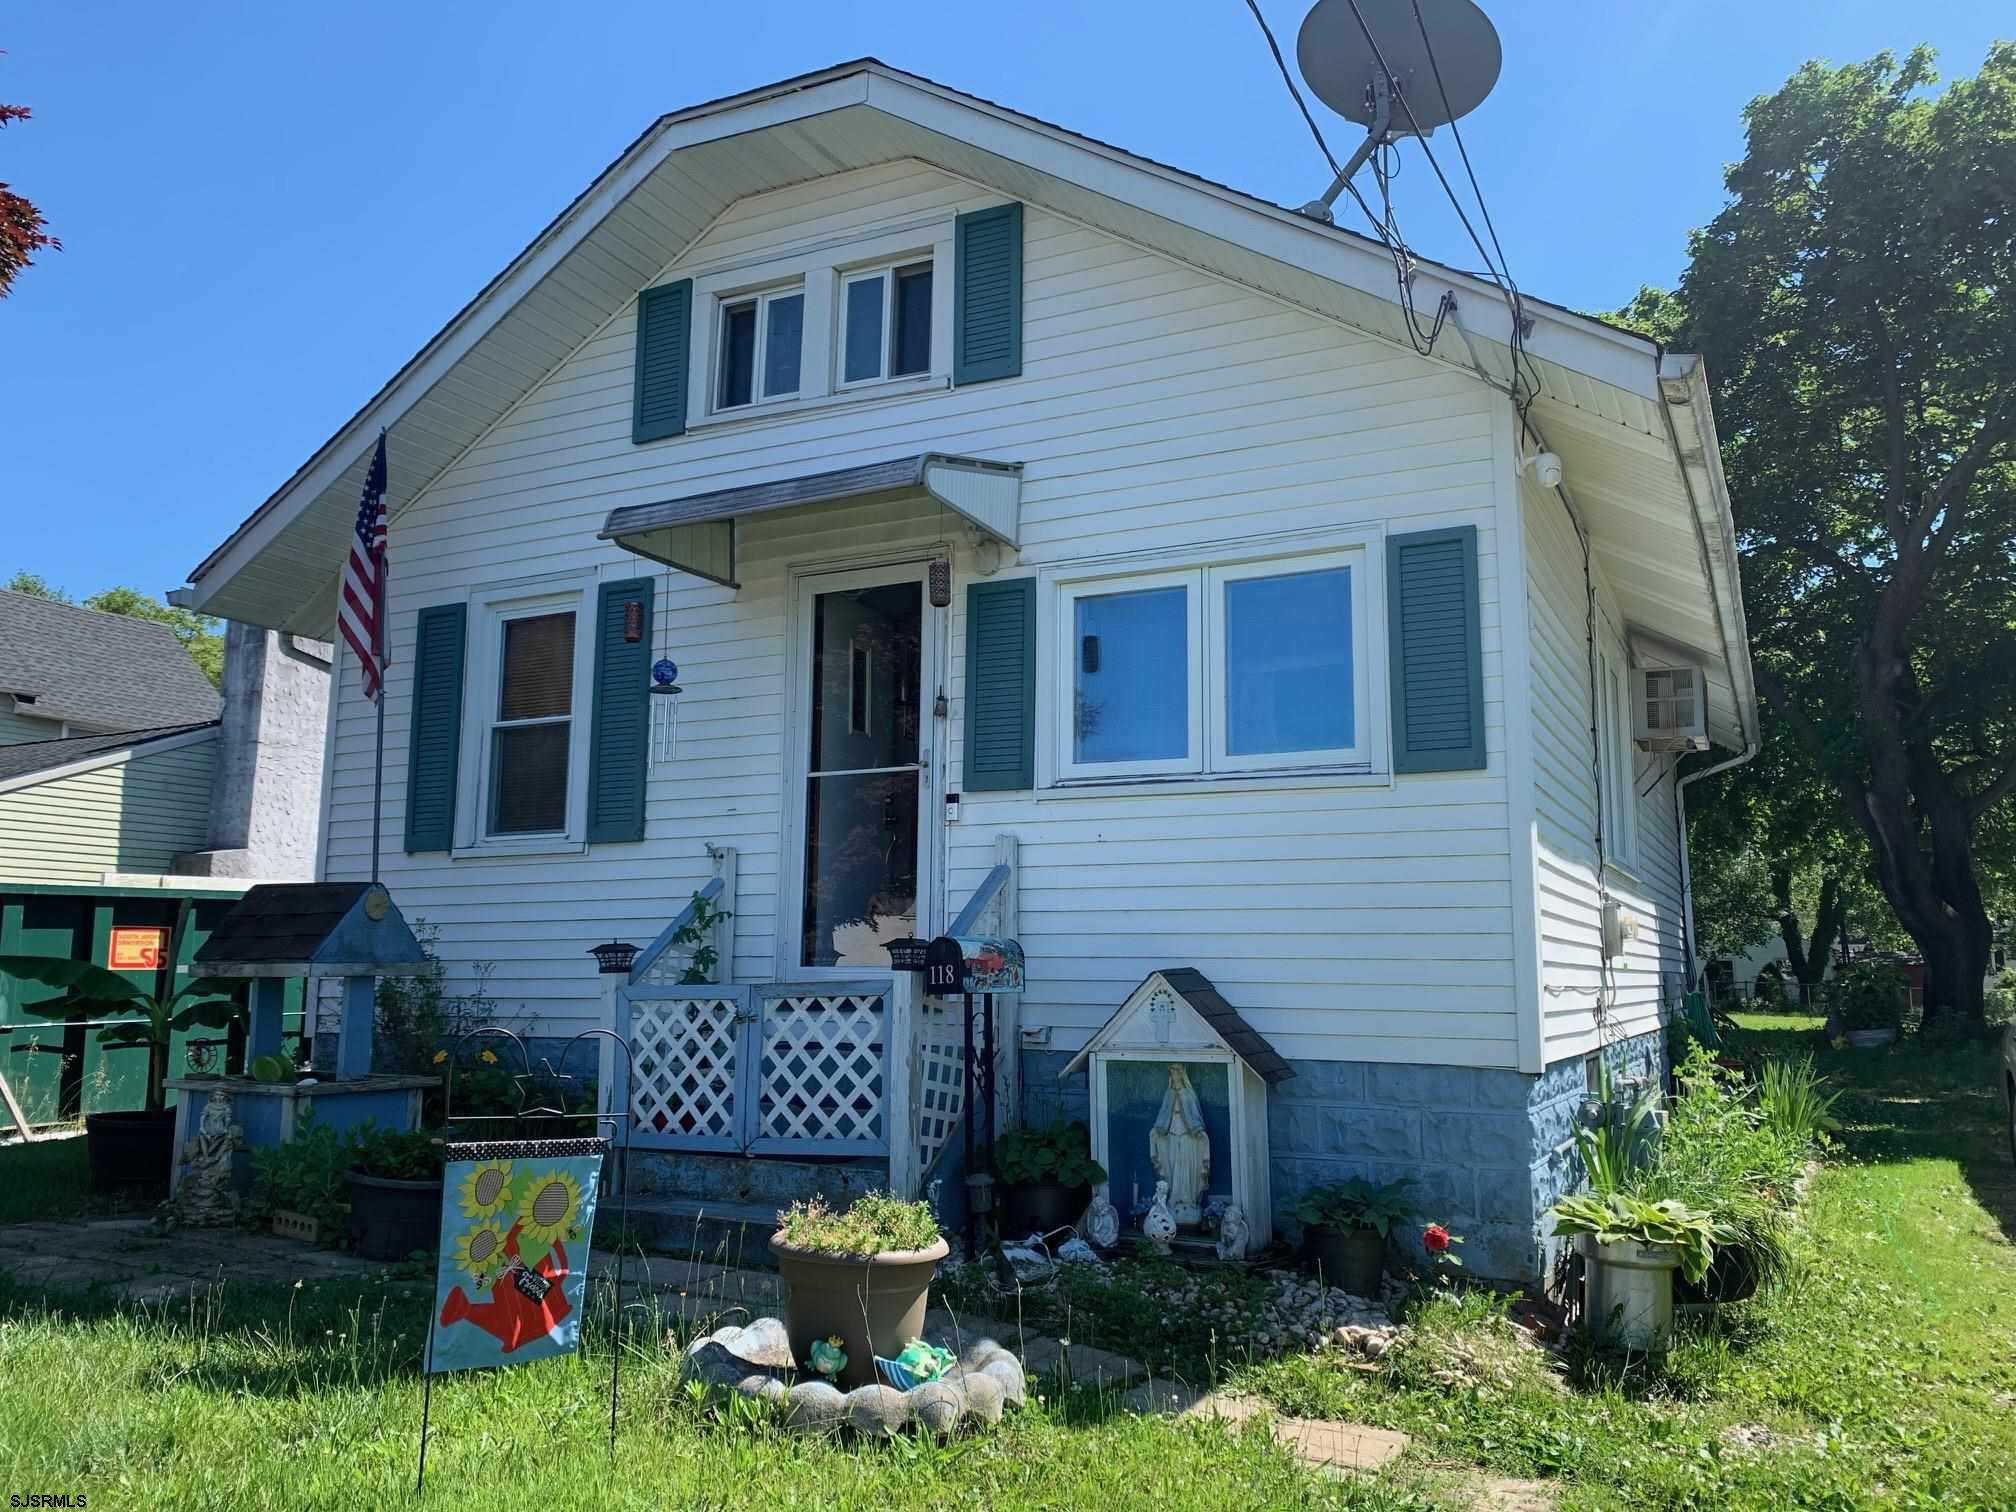 Nowhere else can you find a property under $150,000 in Hammonton..UNTIL NOW! This Quaint 2BR, 1BA is